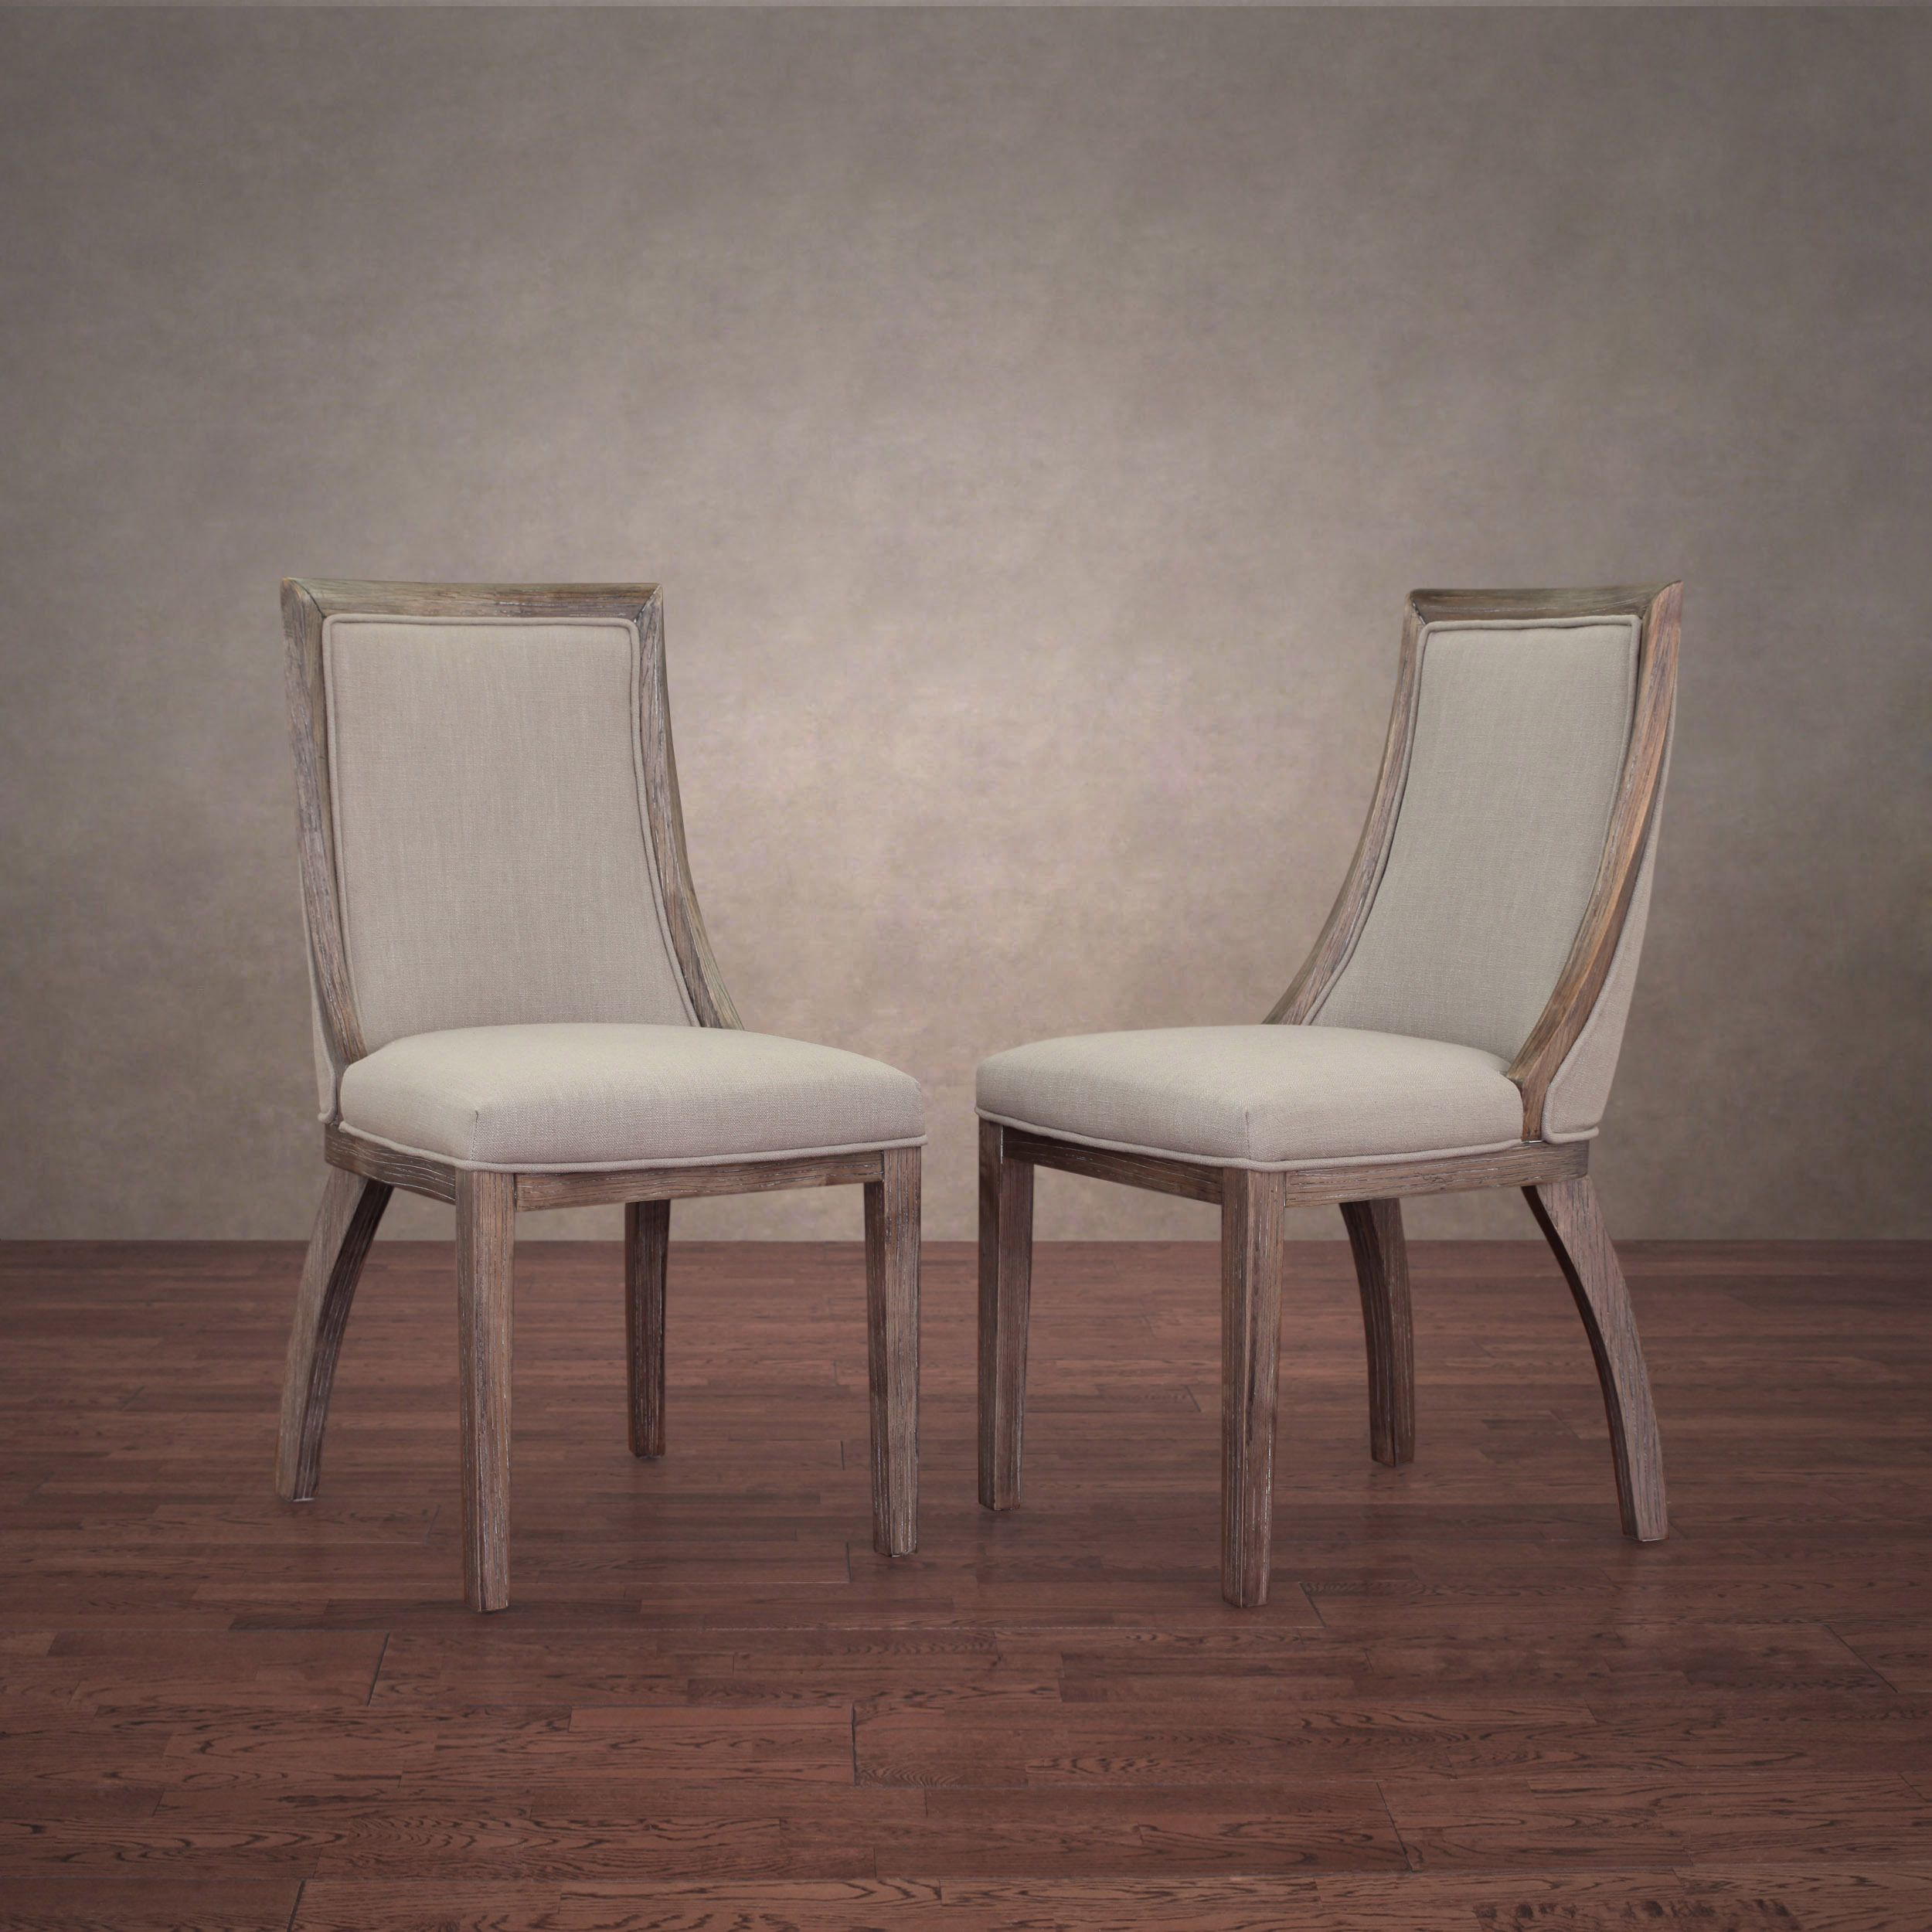 Best Fabric For Dining Room Chairs: The Gray Barn Park Avenue Beige Linen Dining Chairs (Set